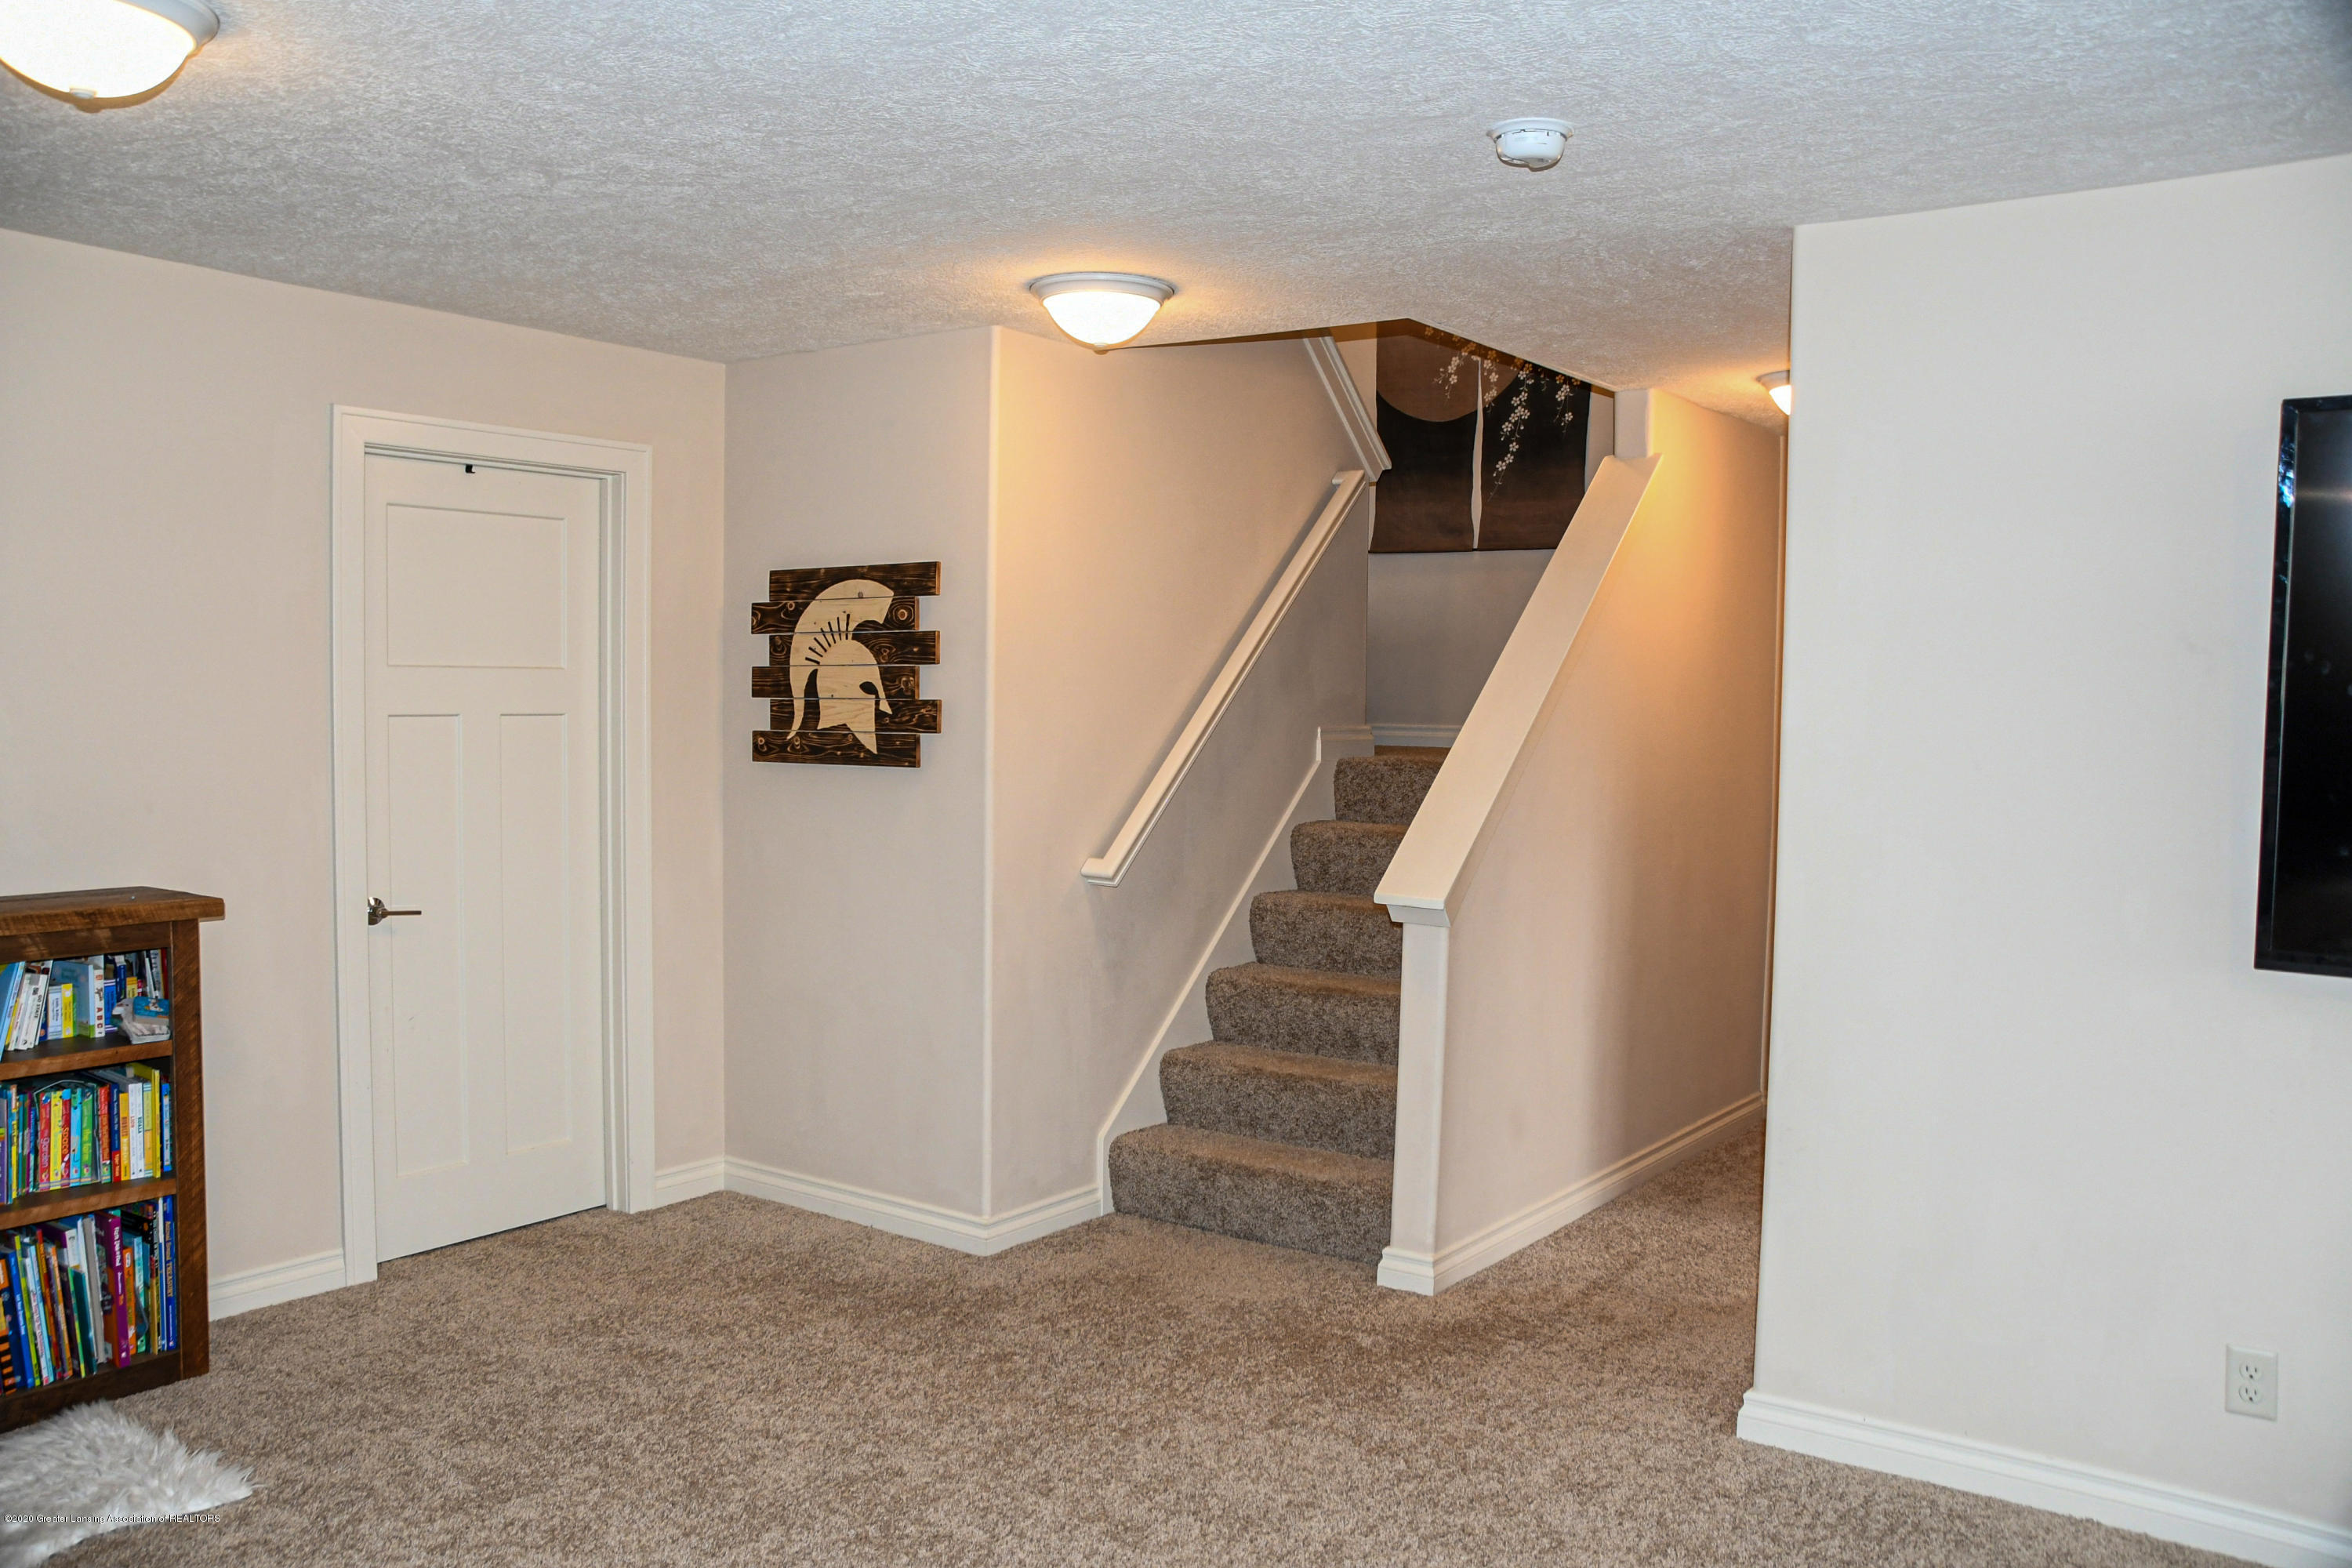 16848 Meadowbrook Dr - Basement-4 - 33